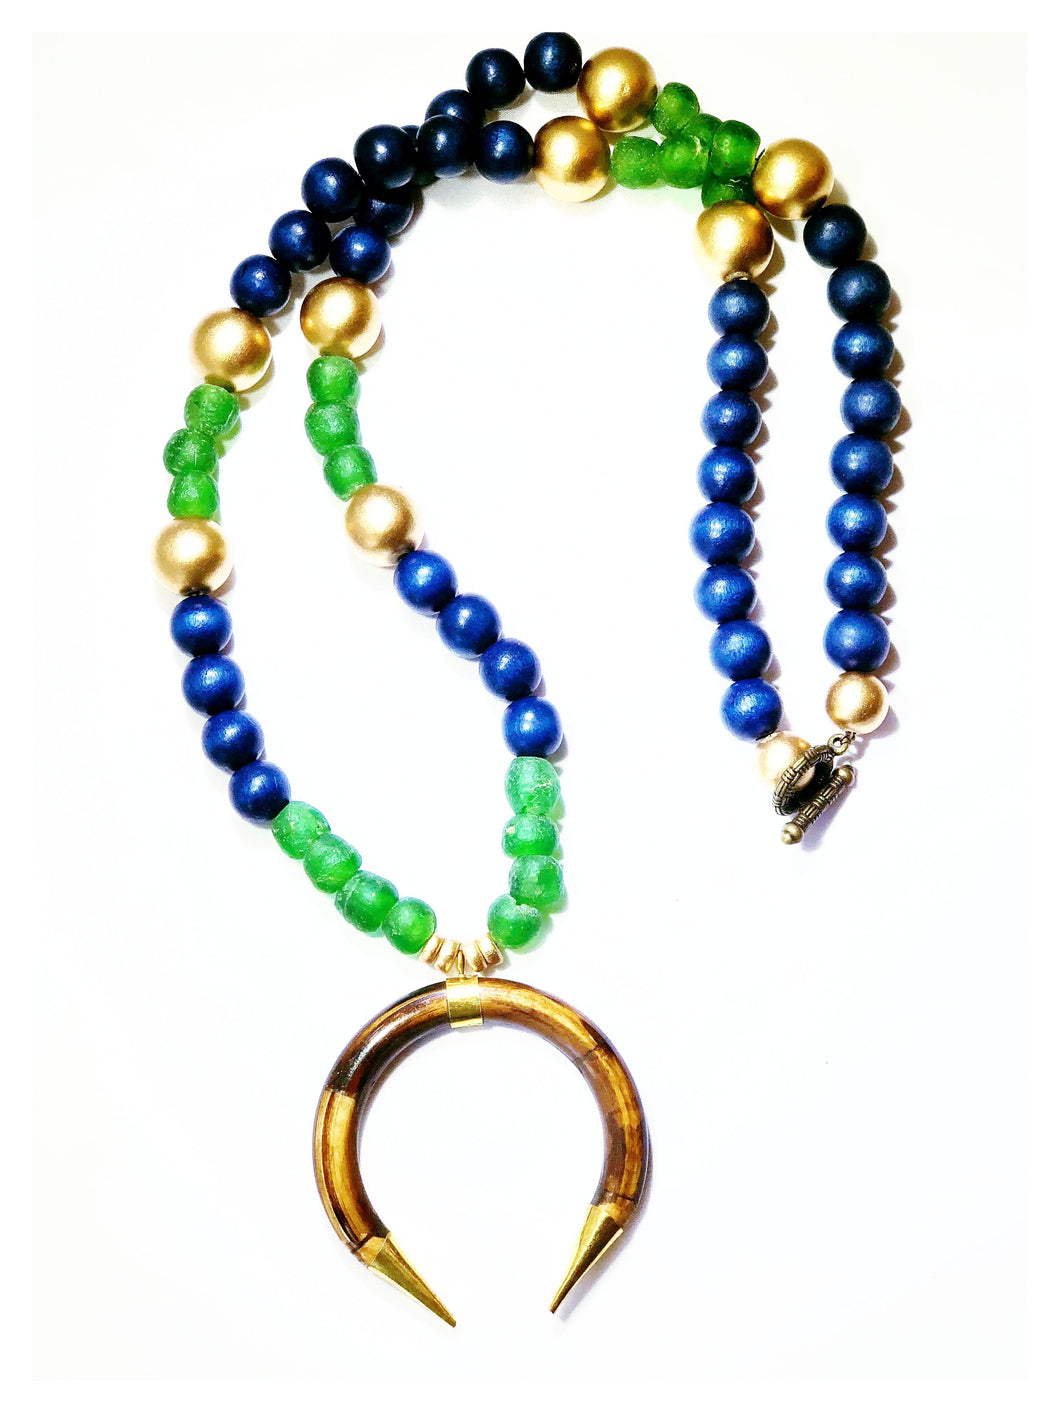 Recycled Glass & Navy with Double Crescent Moon Necklace